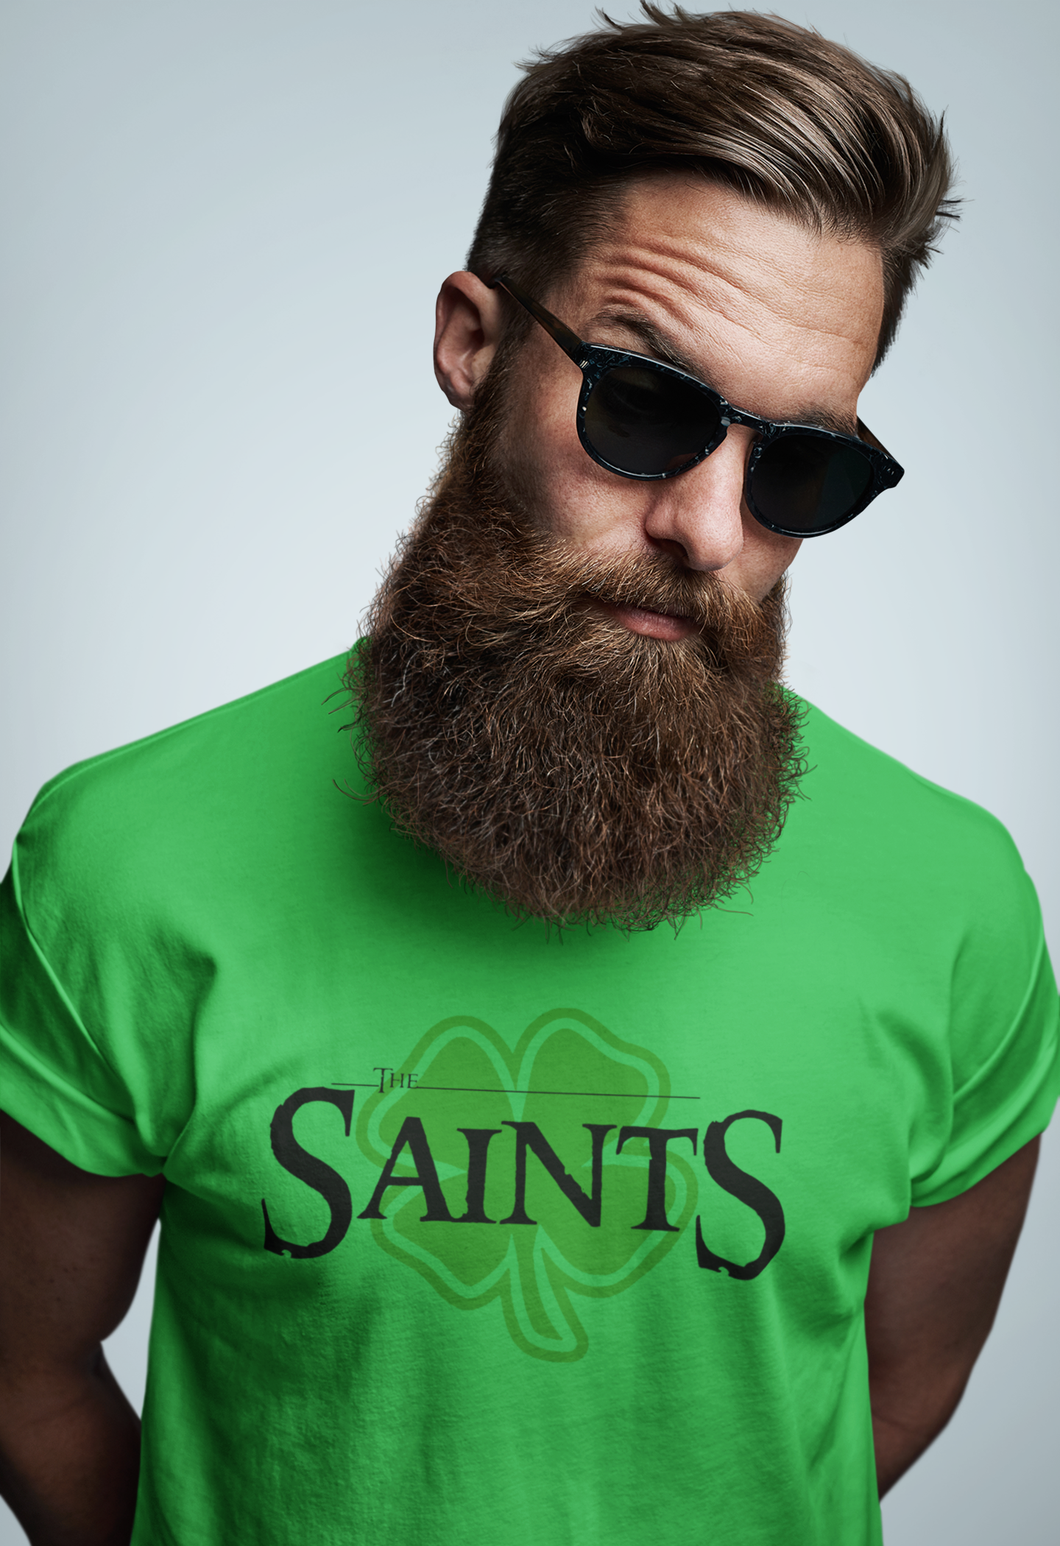 SAINTS Patrick day tee